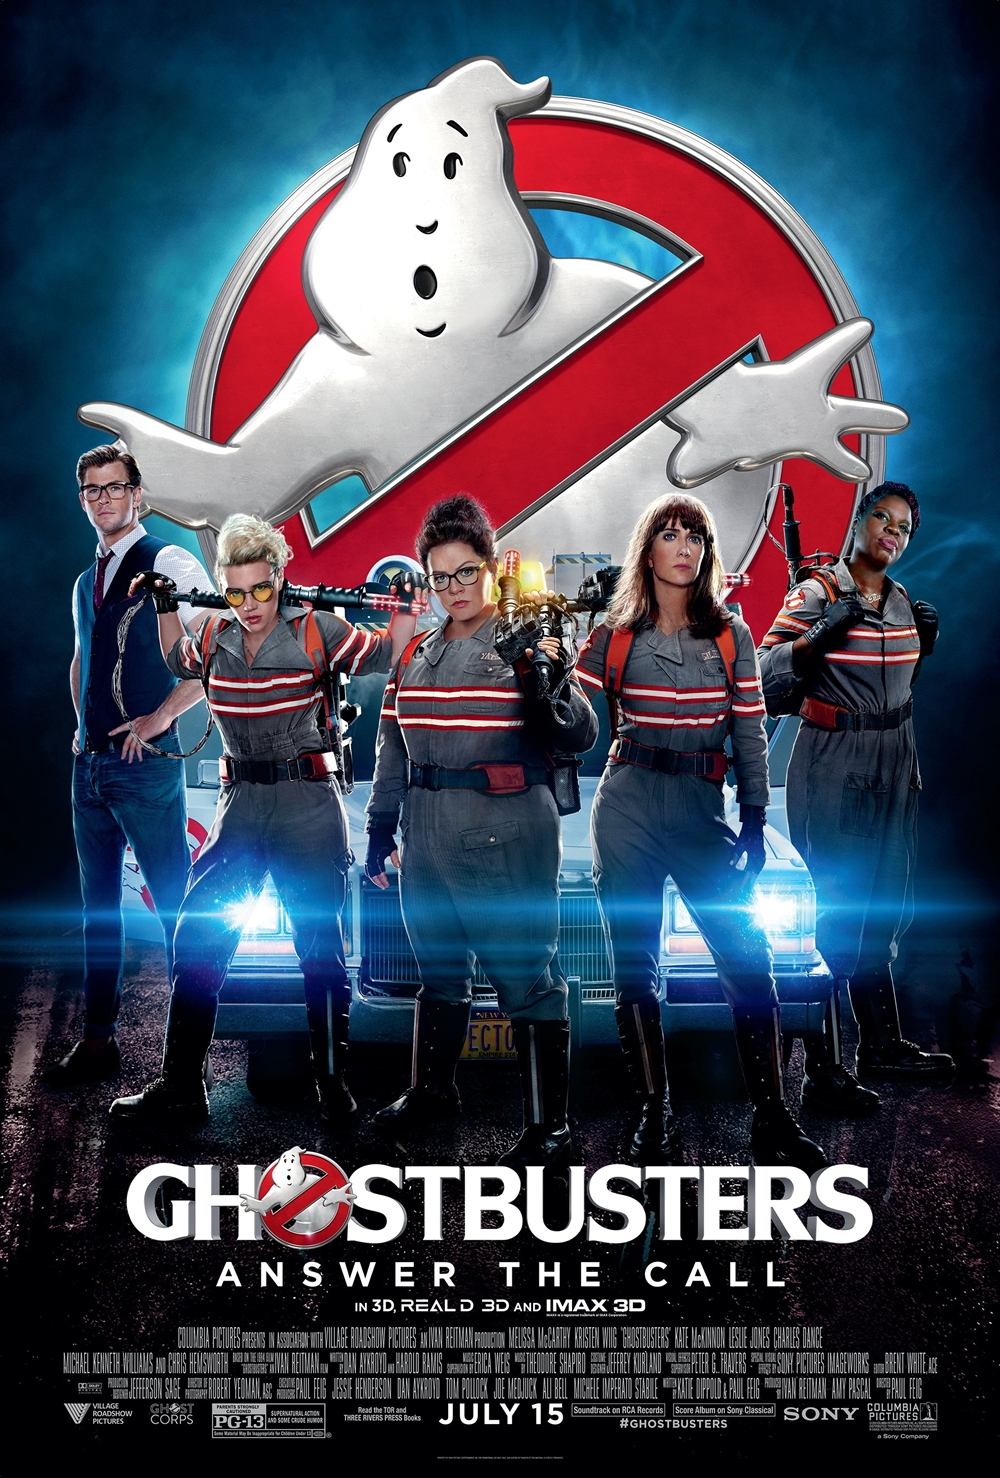 Ghostbusters Pictures 1080p X 1080p: Ghostbusters 2016 Dual Audio 1080p BluRay